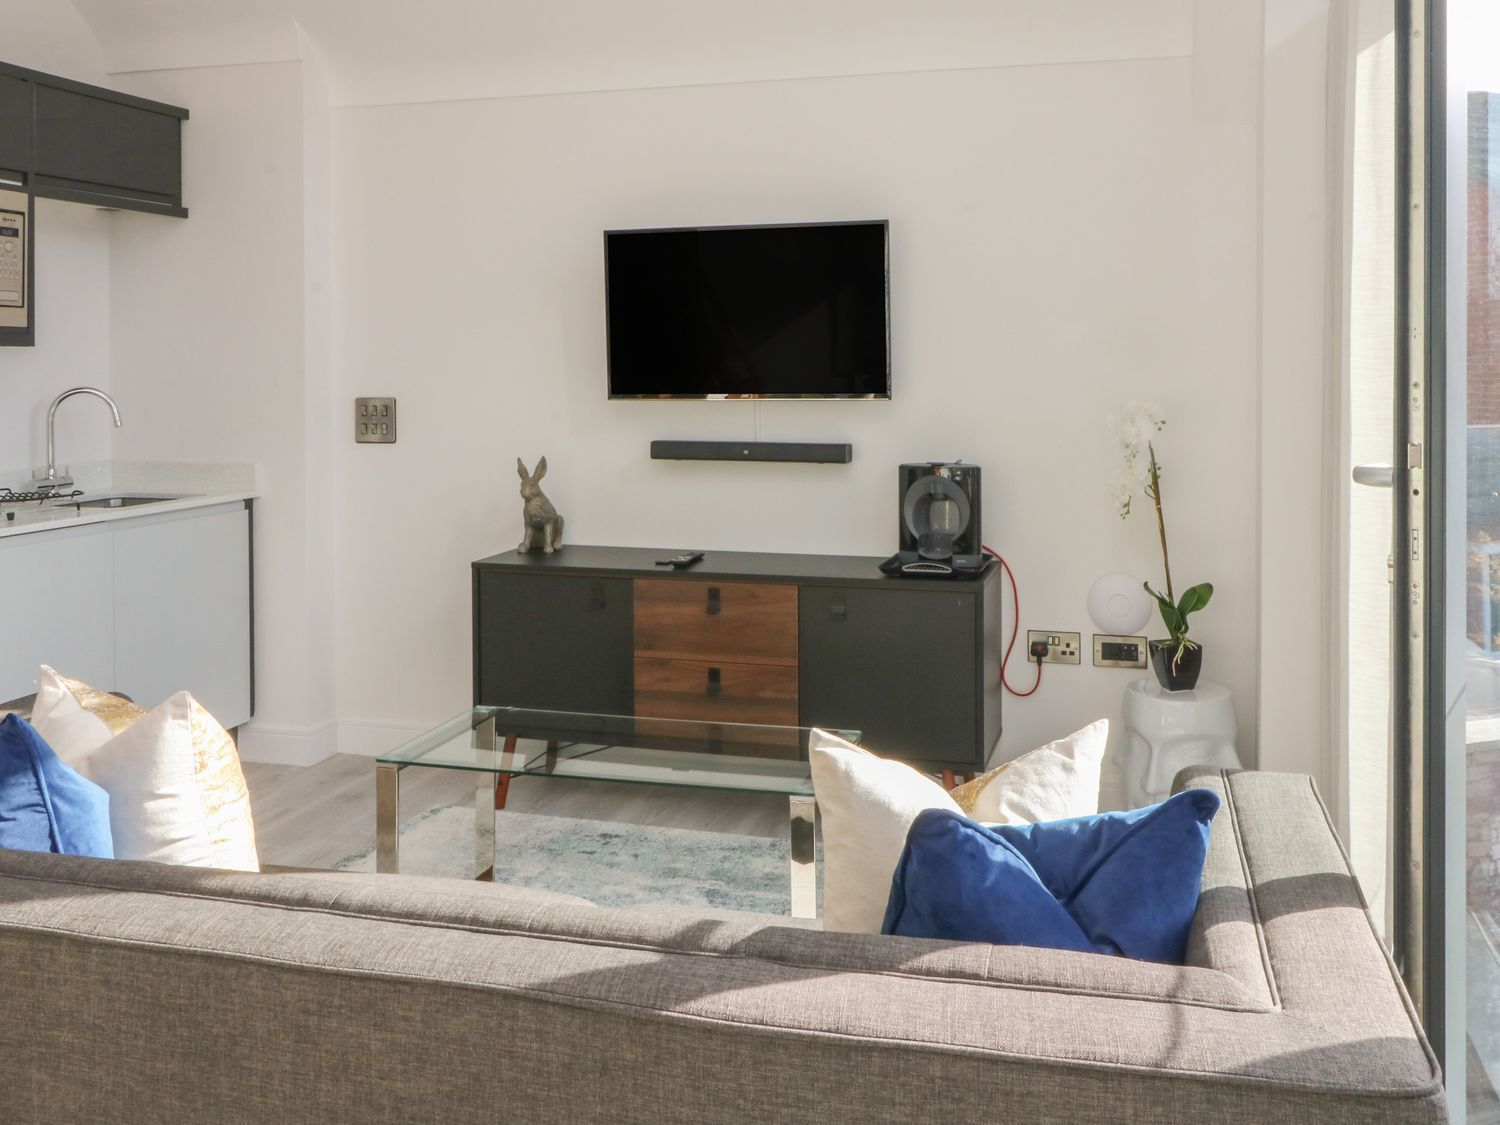 Mulberry in Chester - sleeps 4 people